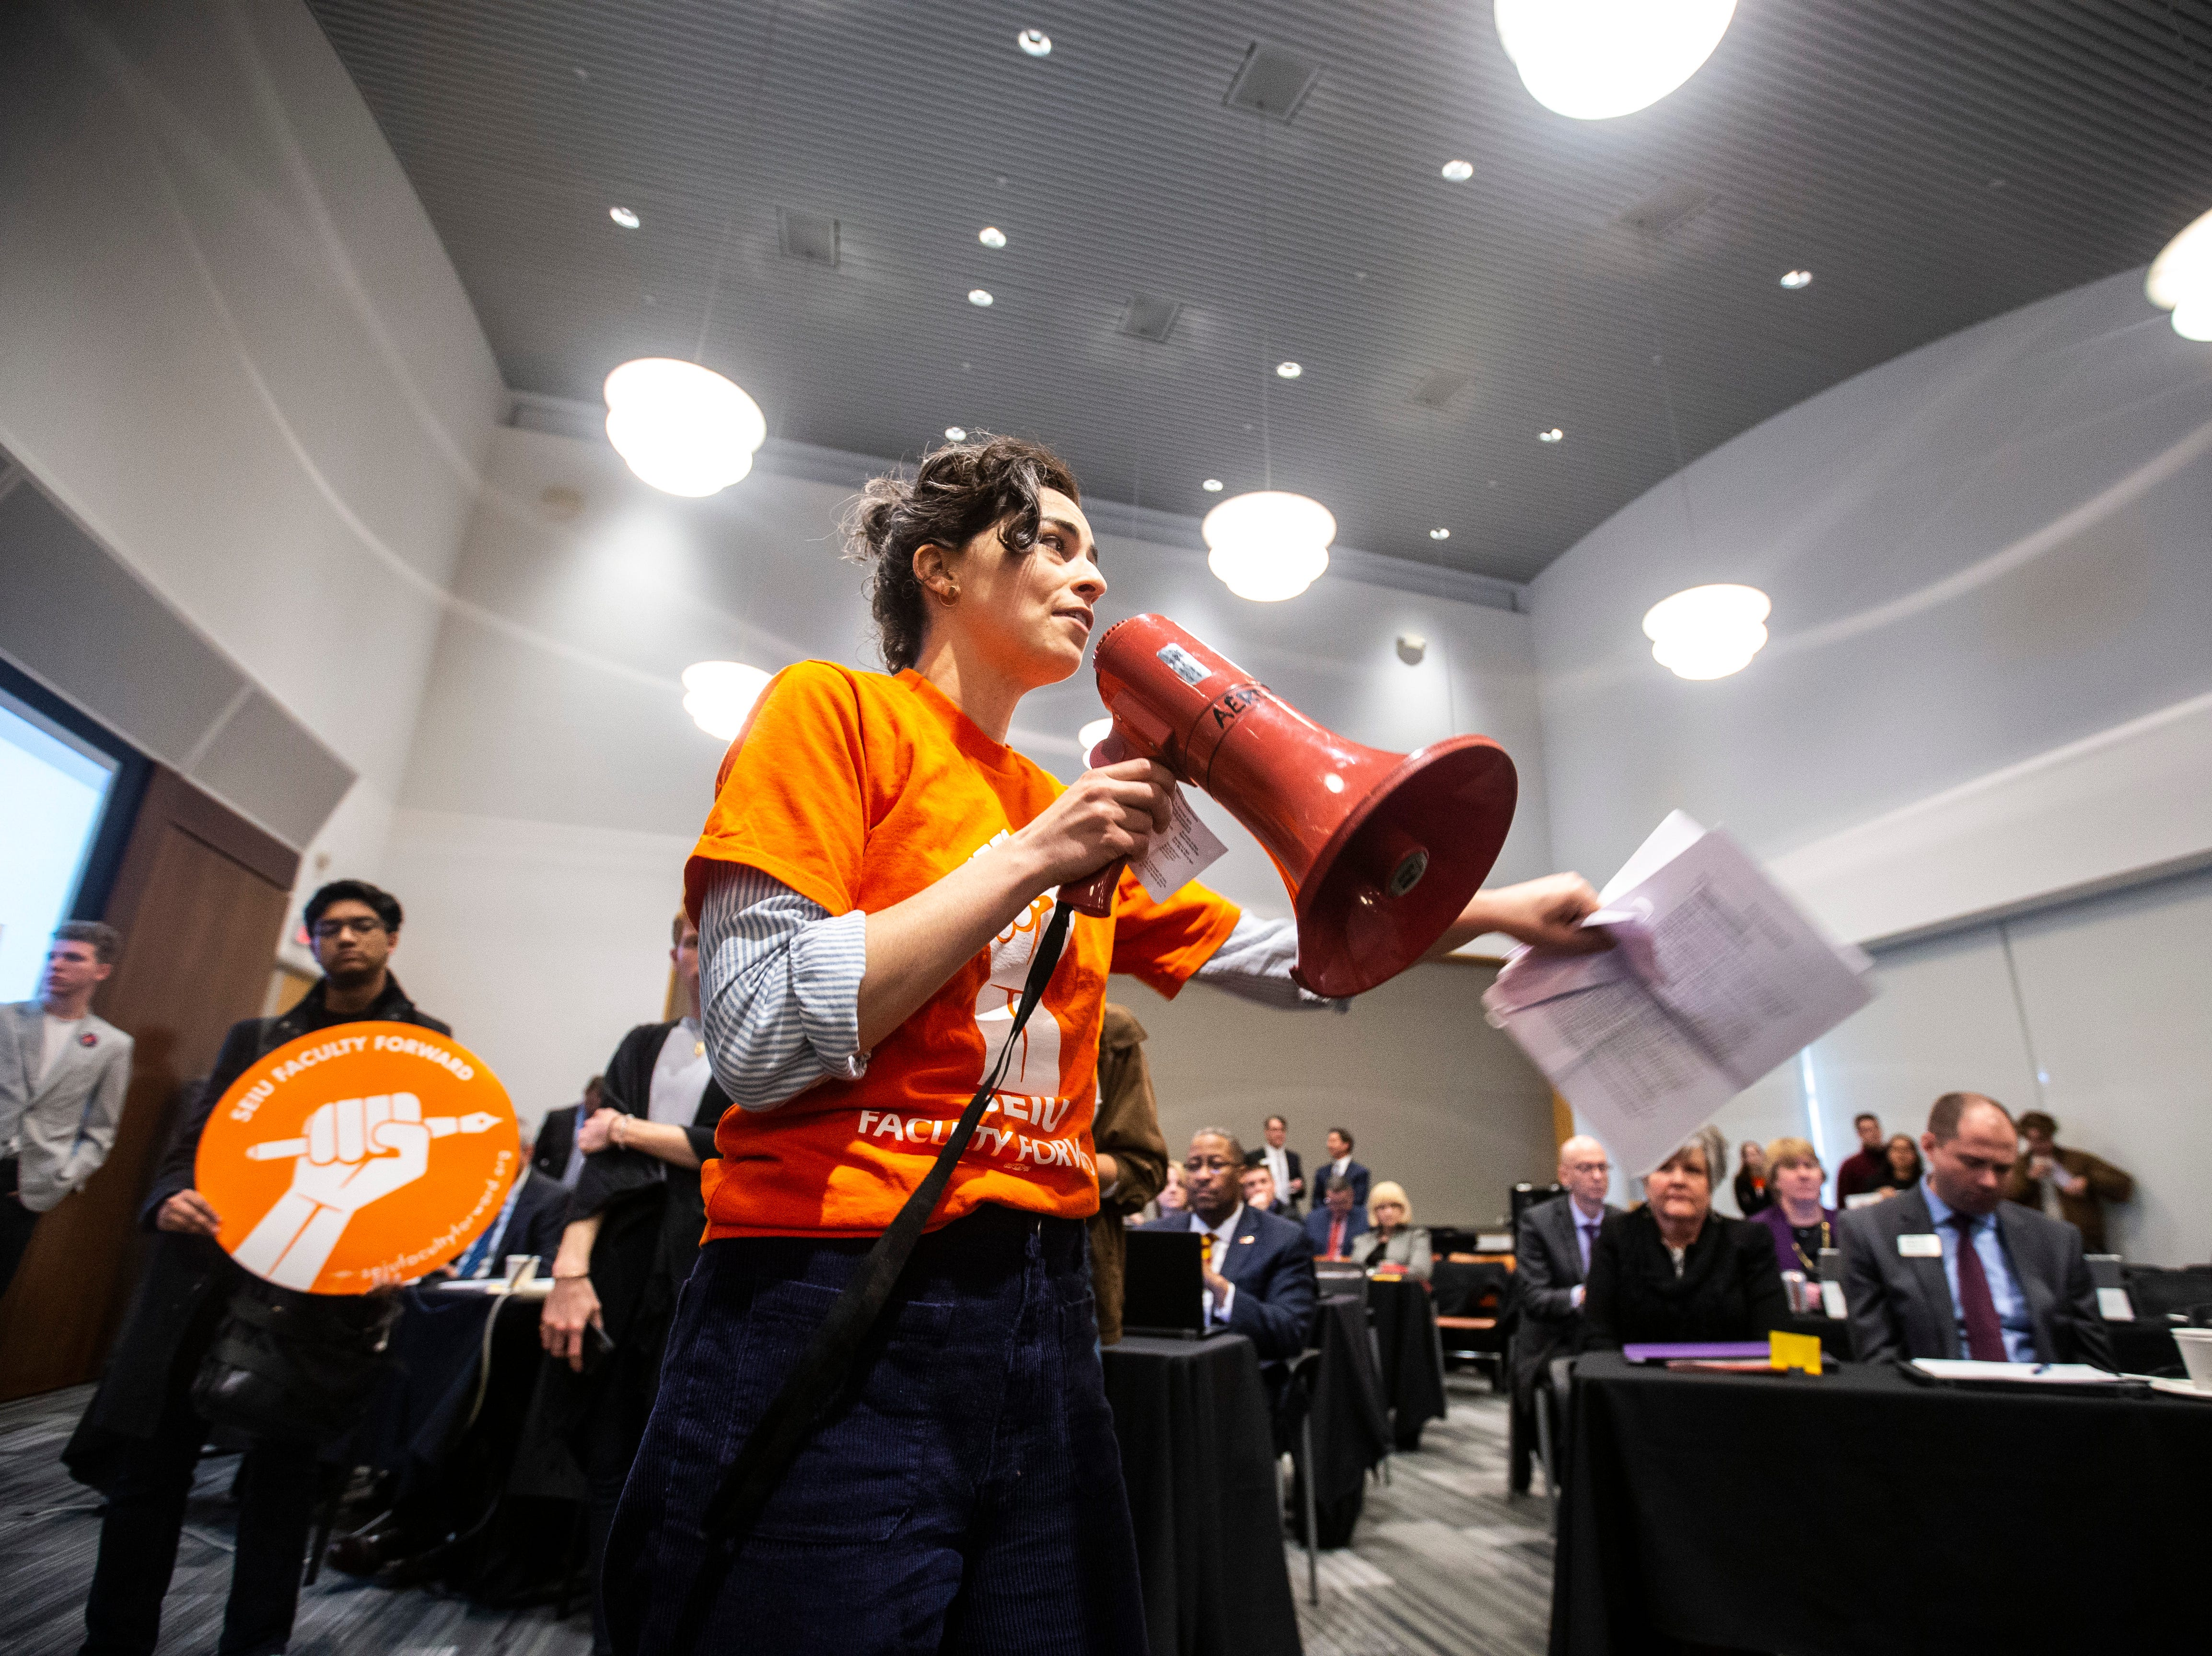 Elizabeth Weiss, a University of Iowa lecturer, leads a chant with members of the Faculty Forward and Service Employees International Union during an Iowa Board of Regents meeting, Thursday, April 18, 2019, in the Levitt Center on the University of Iowa campus in Iowa City, Iowa.